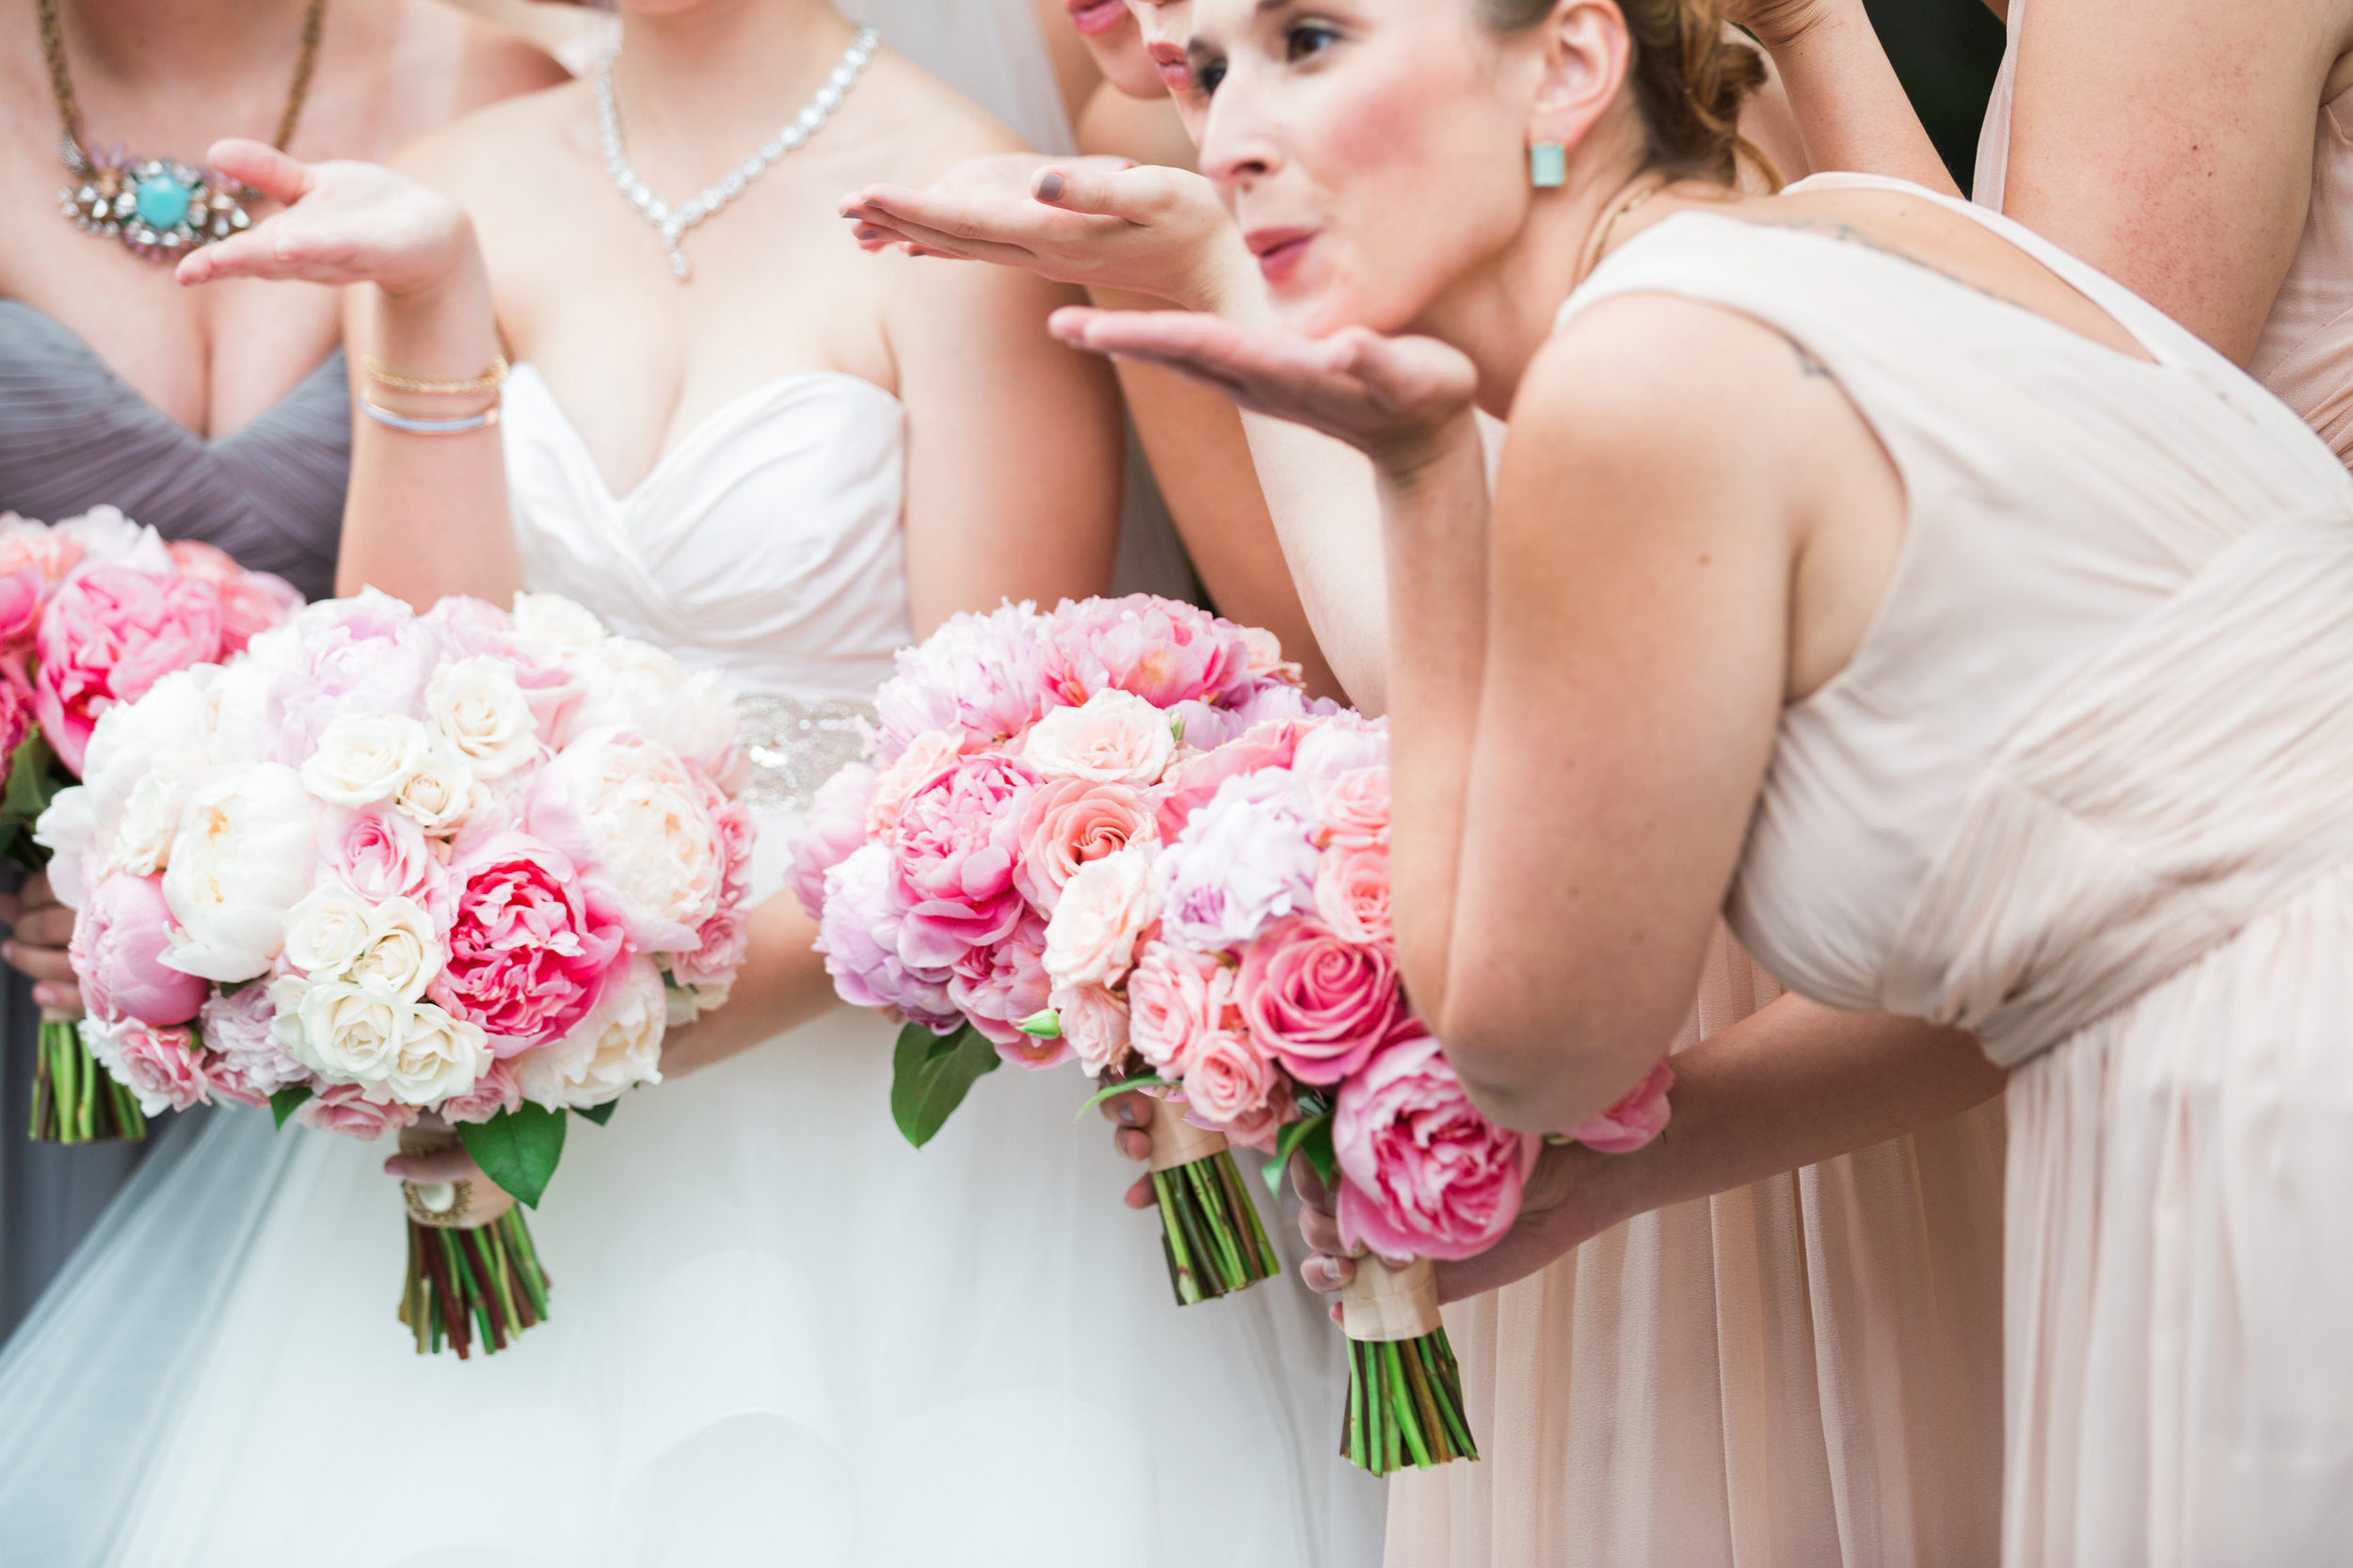 Playful Bridesmaids